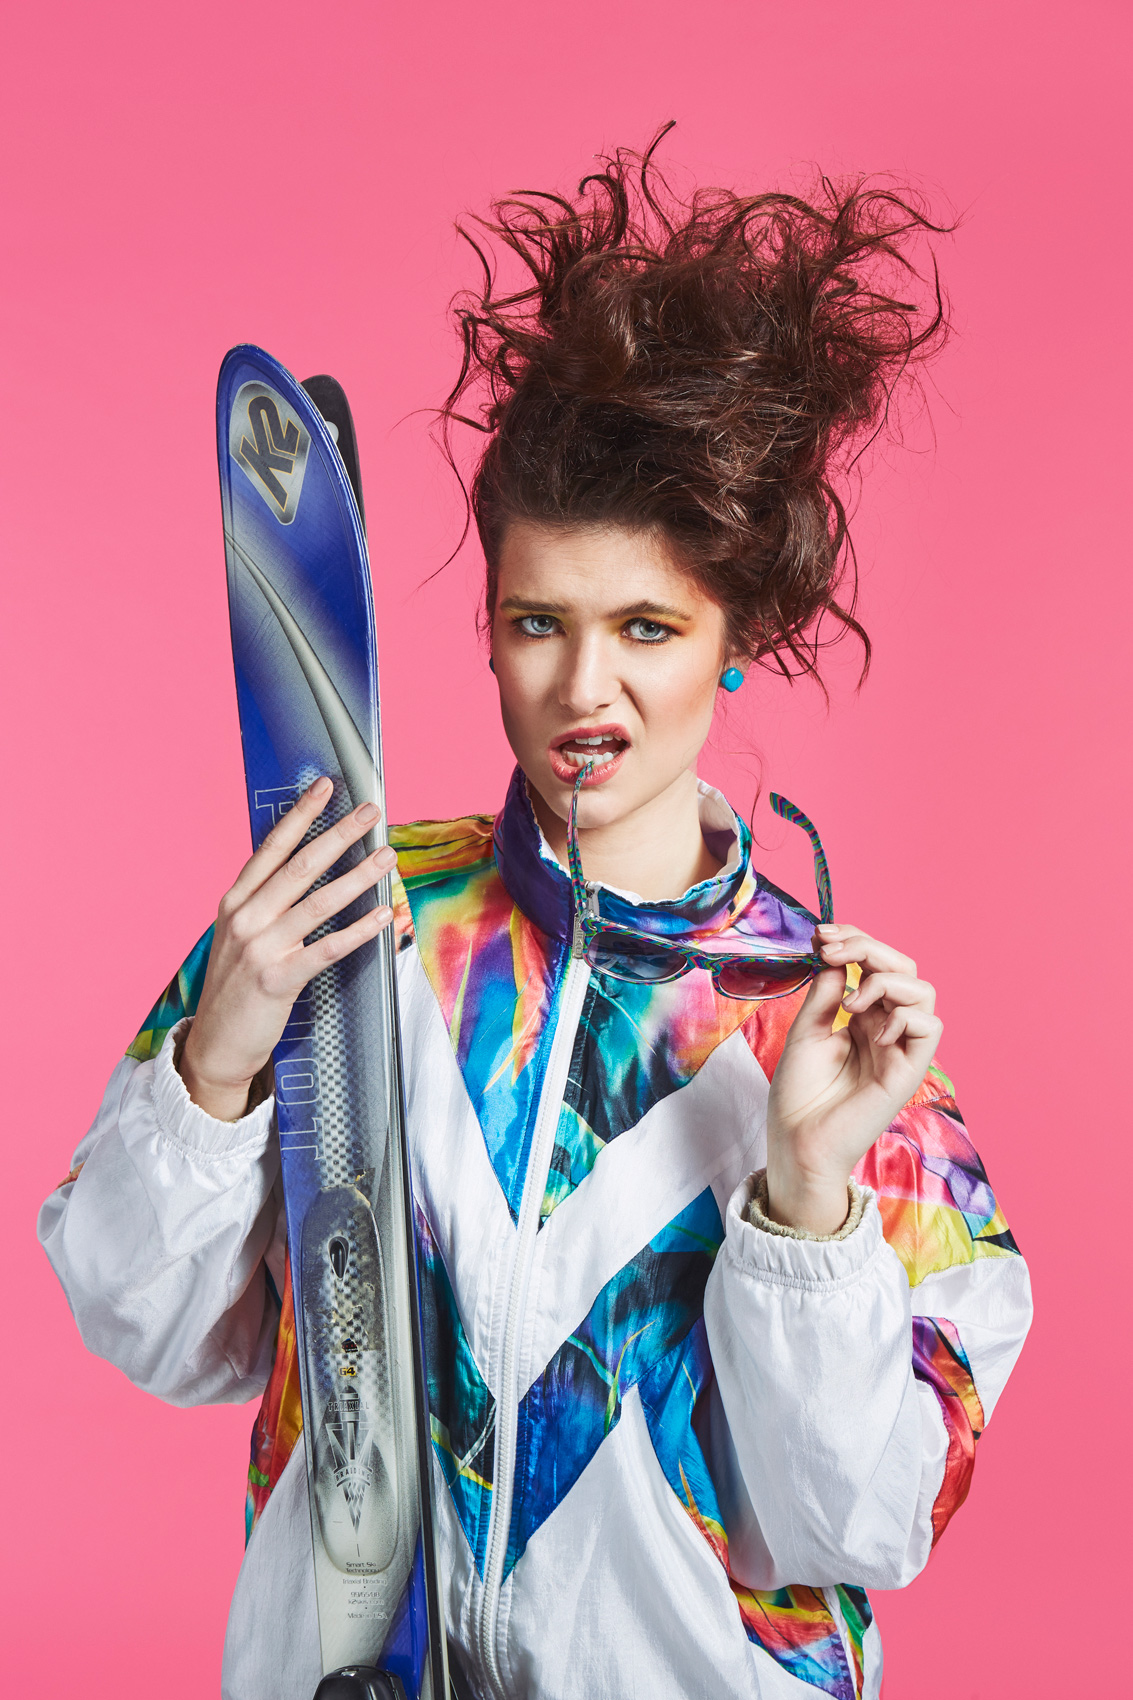 80s Portrait - Better Off Dead Female Skier